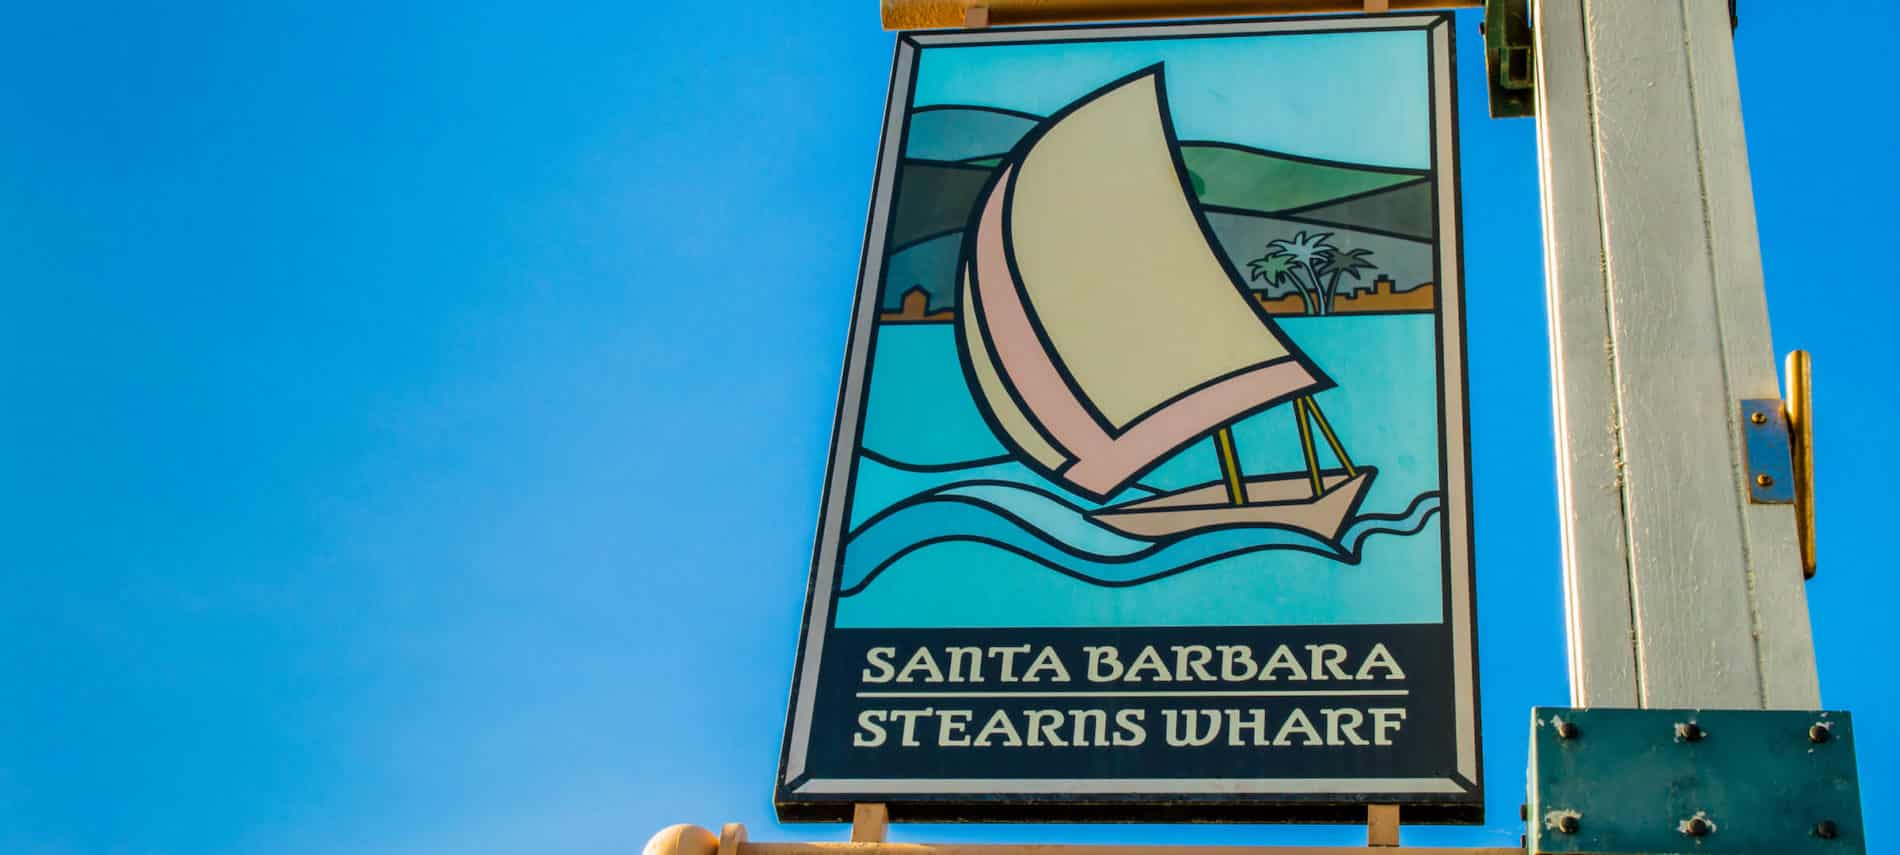 Santa Barbara's Stearns Wharf sign post amidst a brillian blue sky